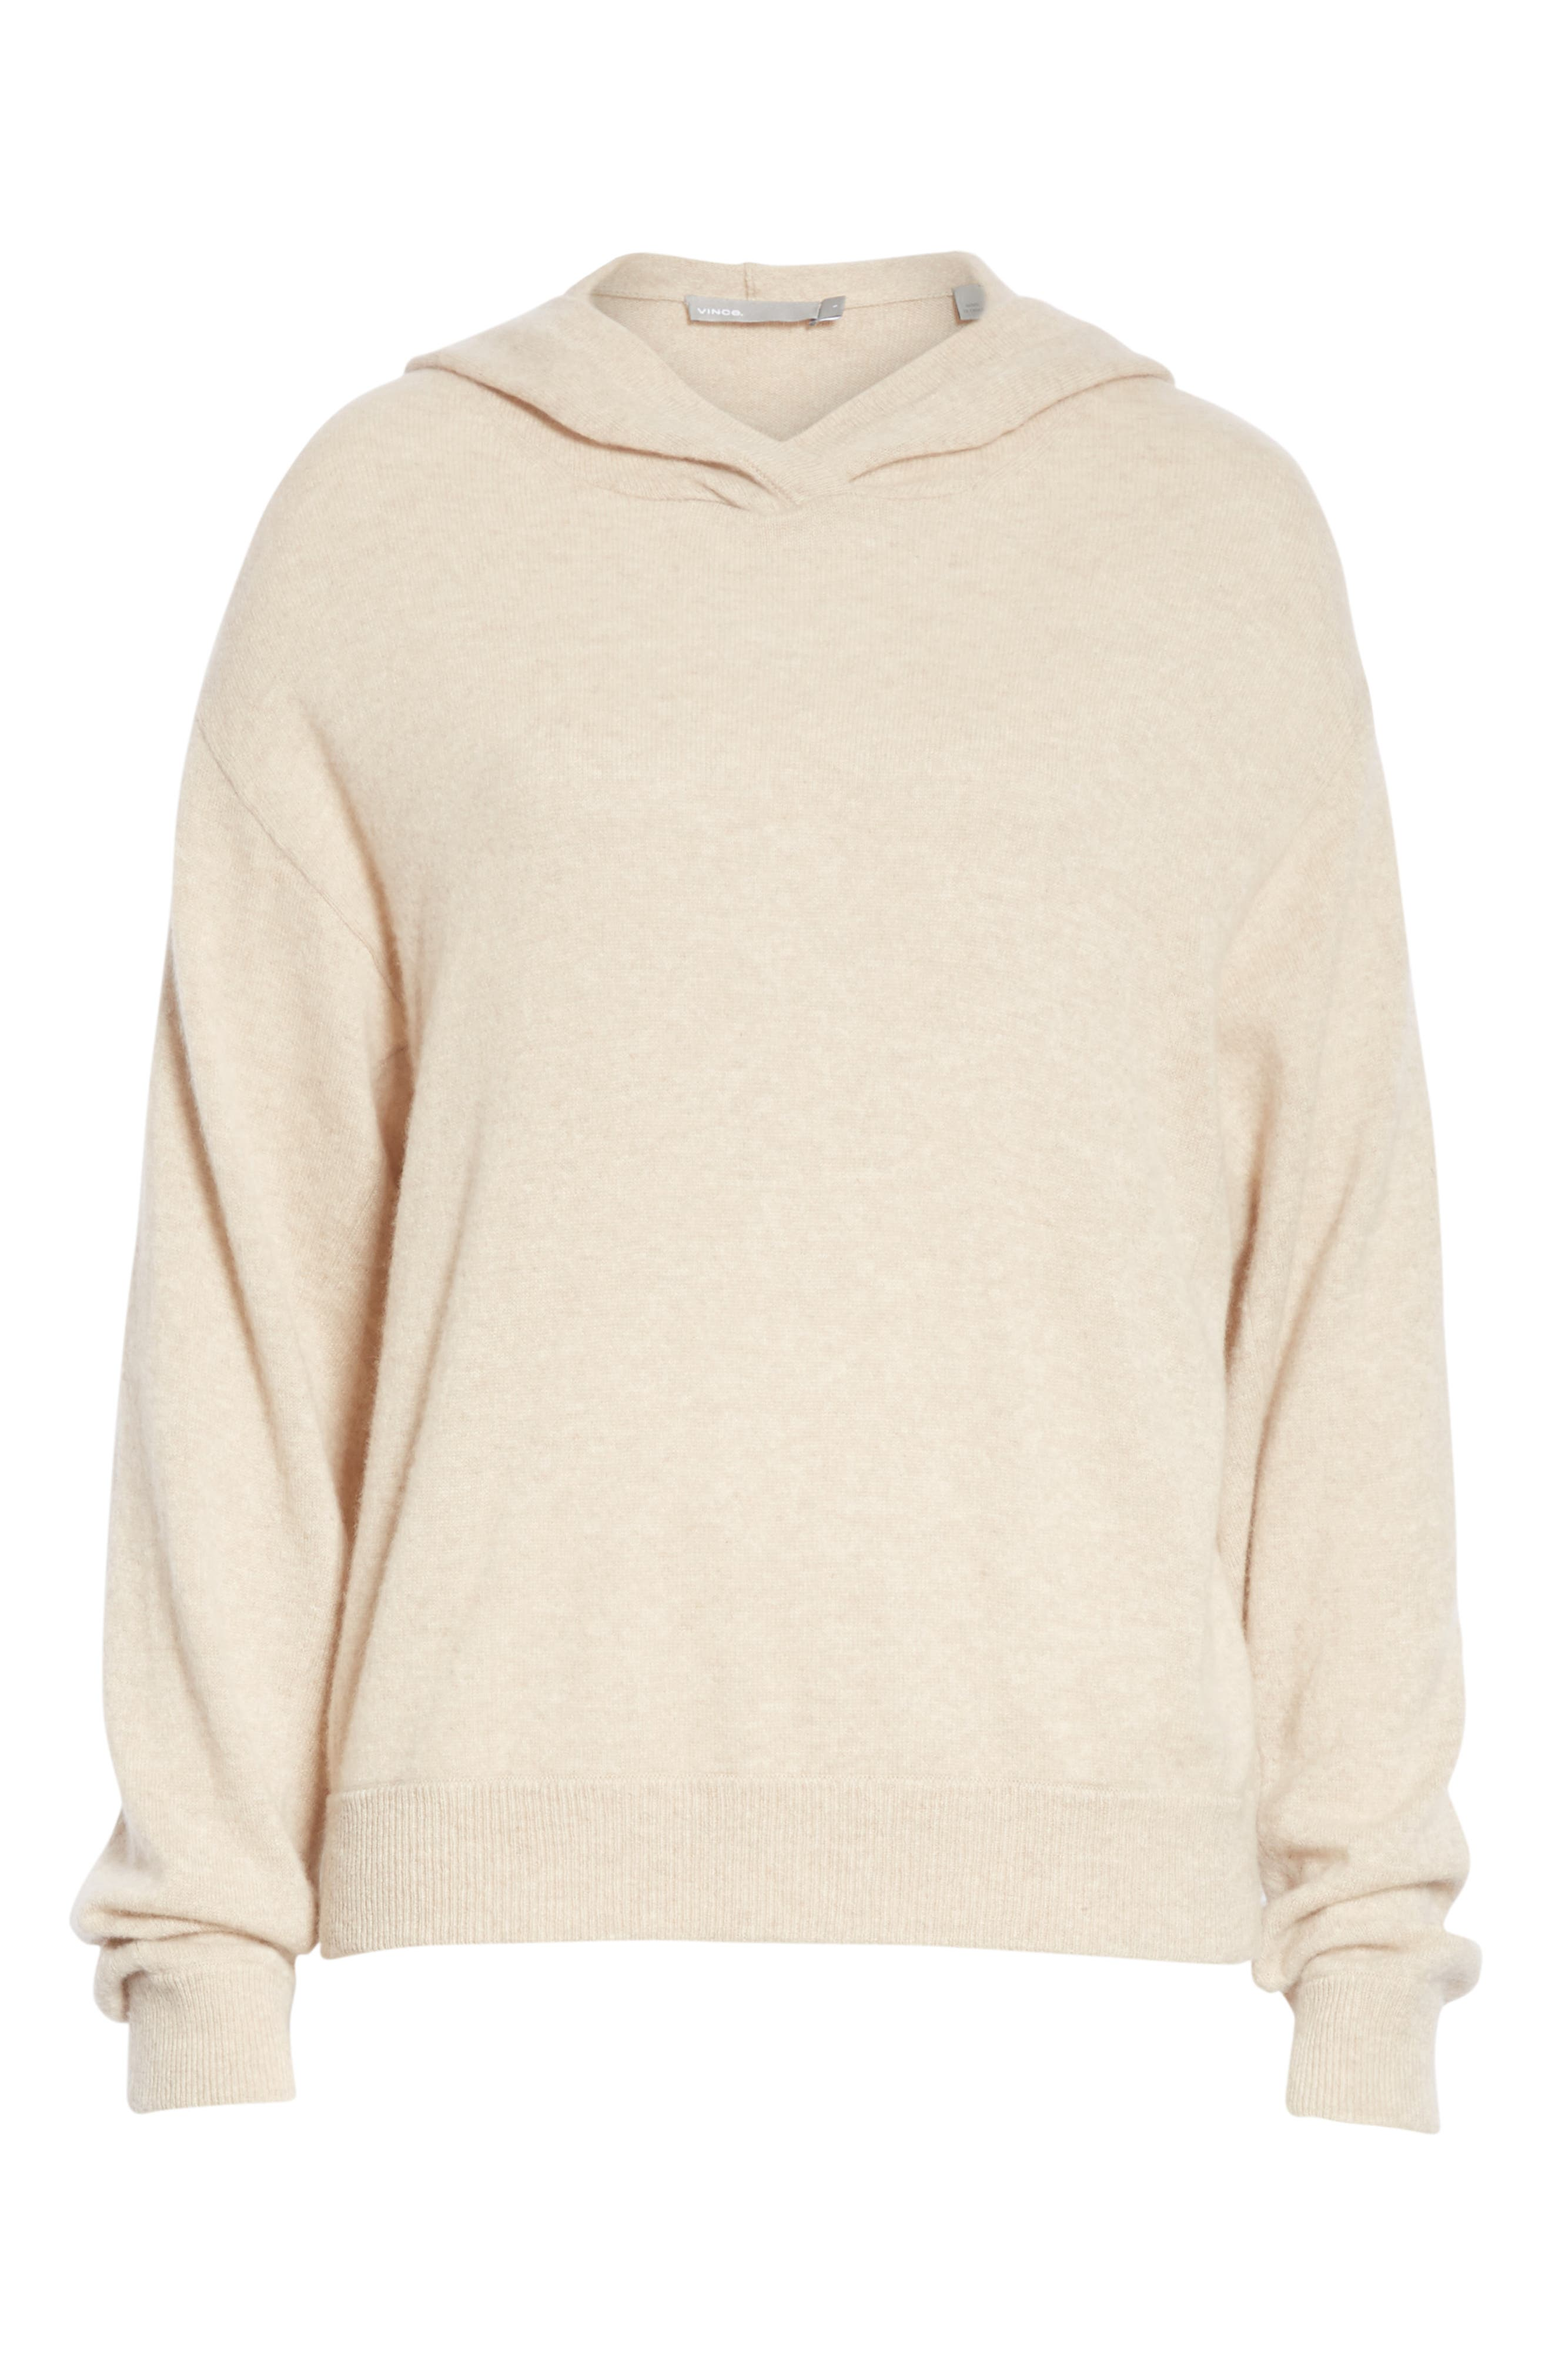 Overlap Cashmere Hoodie,                             Alternate thumbnail 6, color,                             255